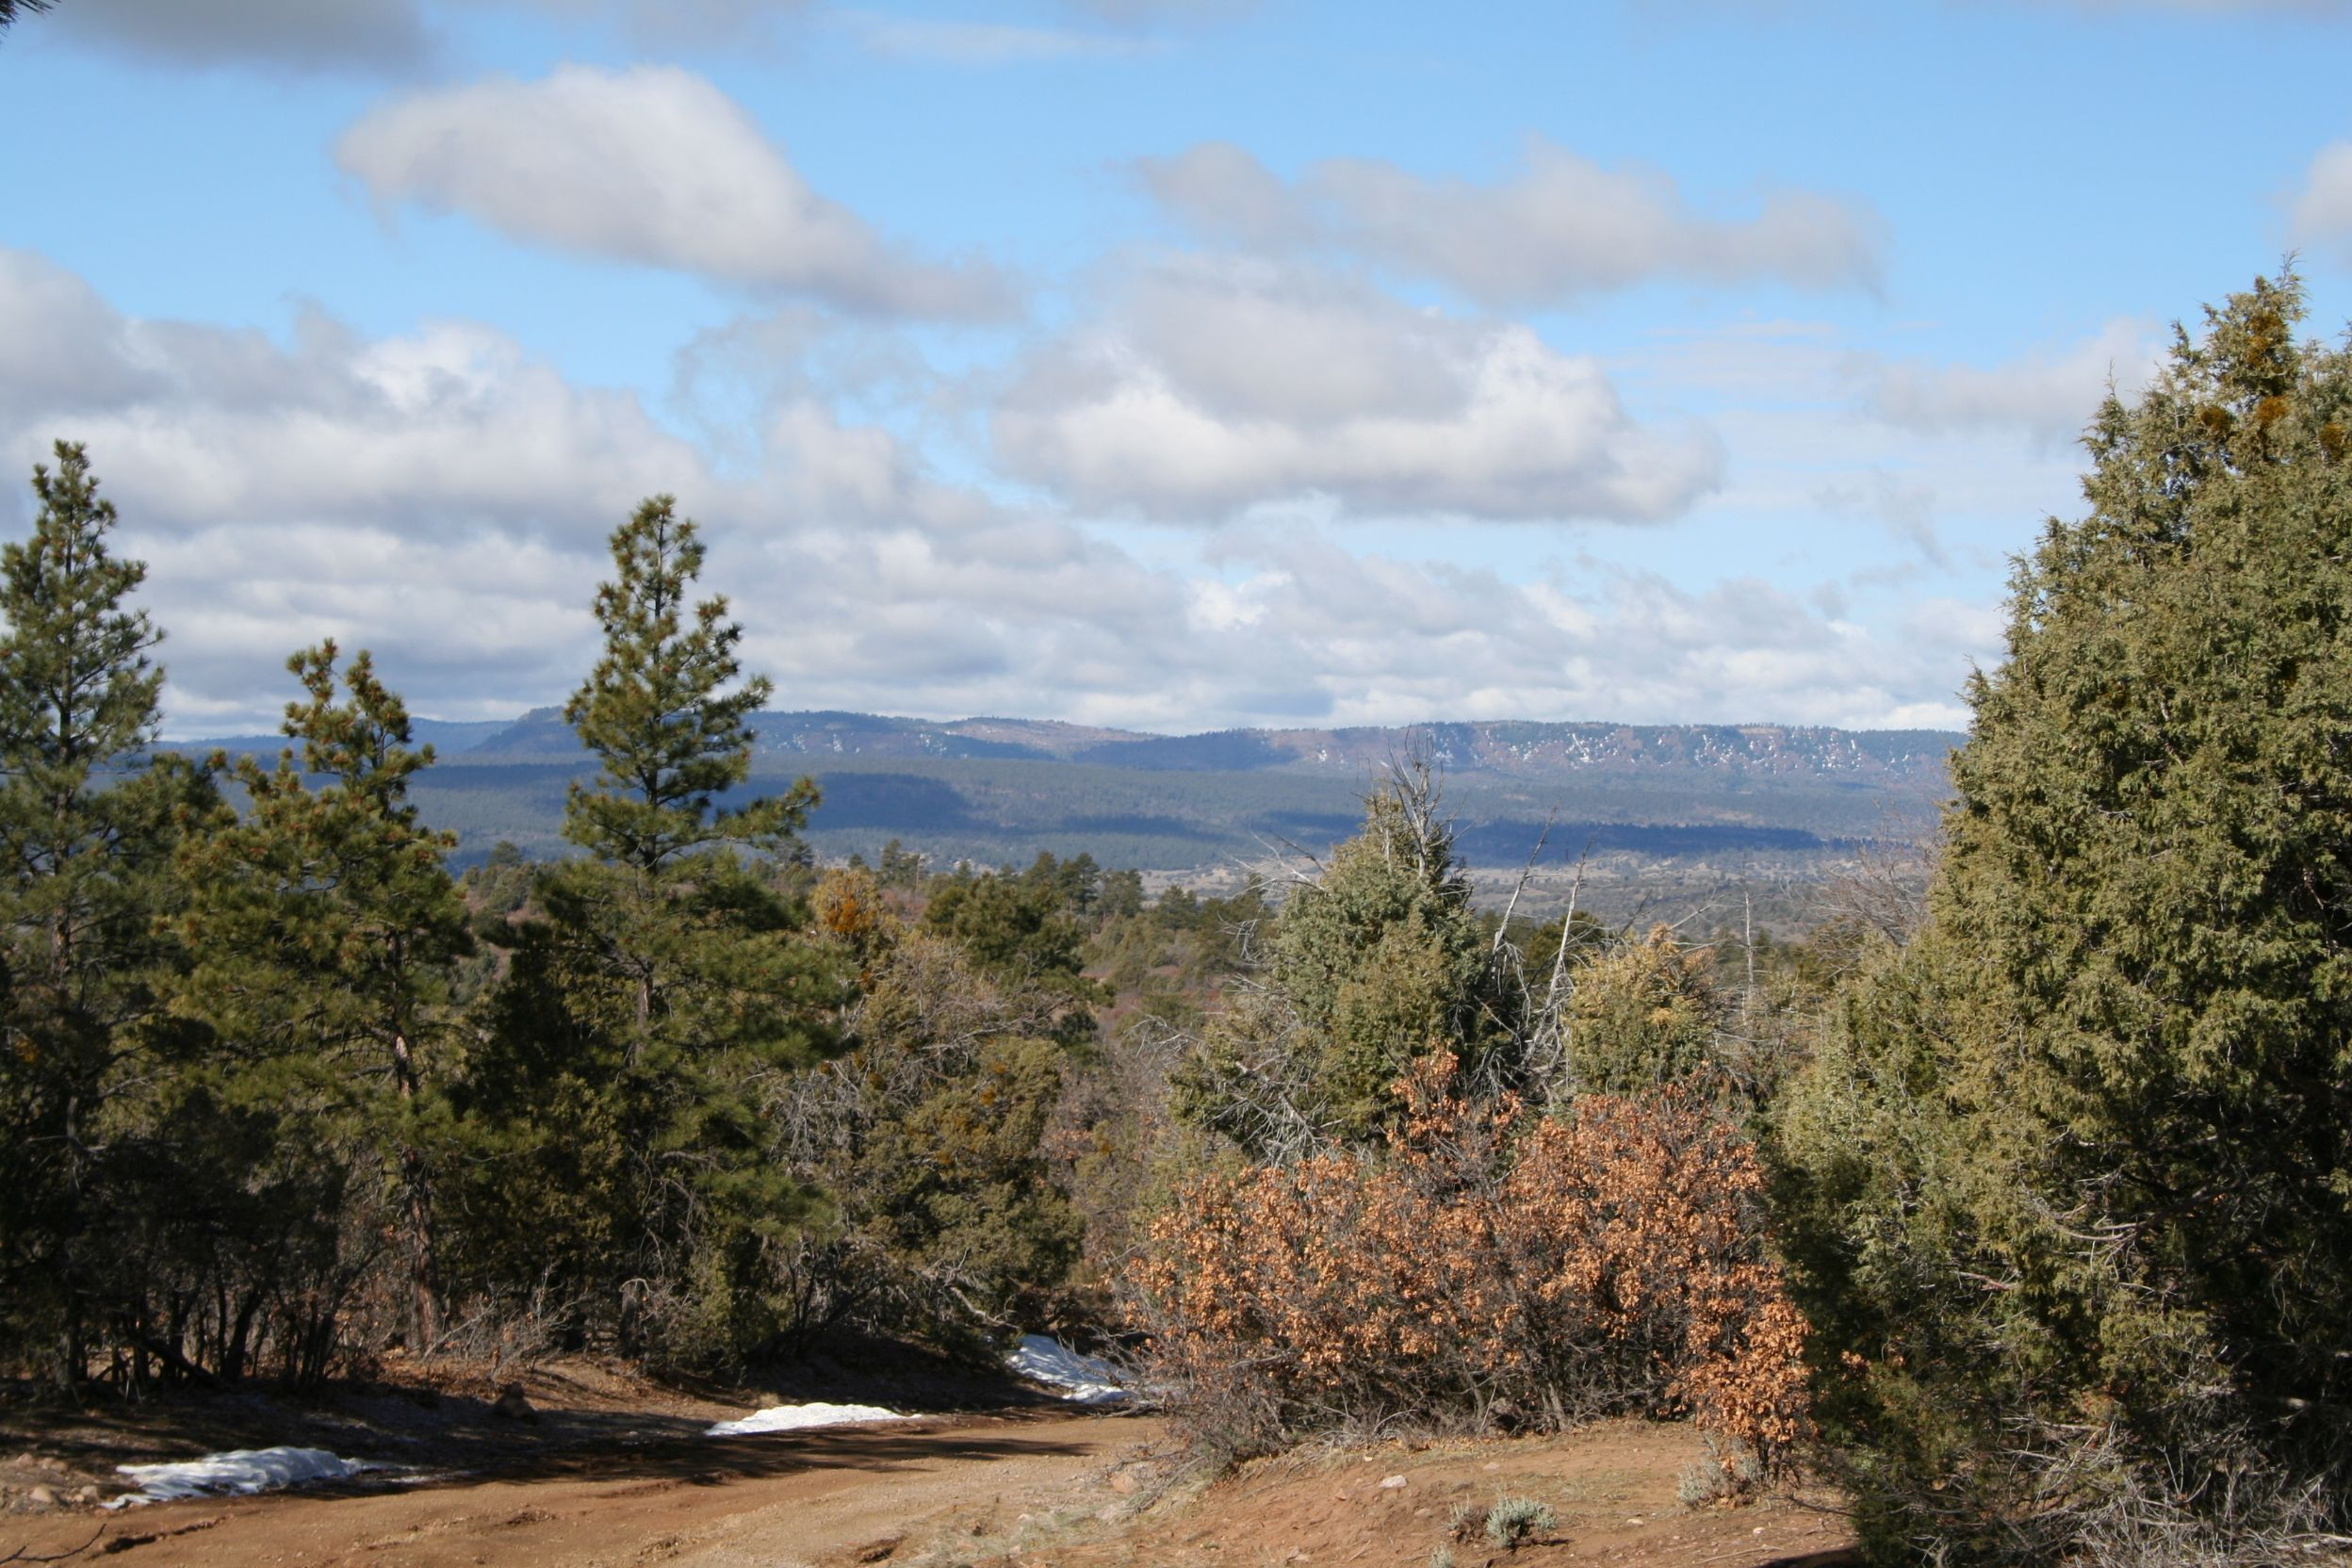 ROCKY MT & VALLEY VIEWS/NORTH NM/LEVEL SITE/TALL PINES